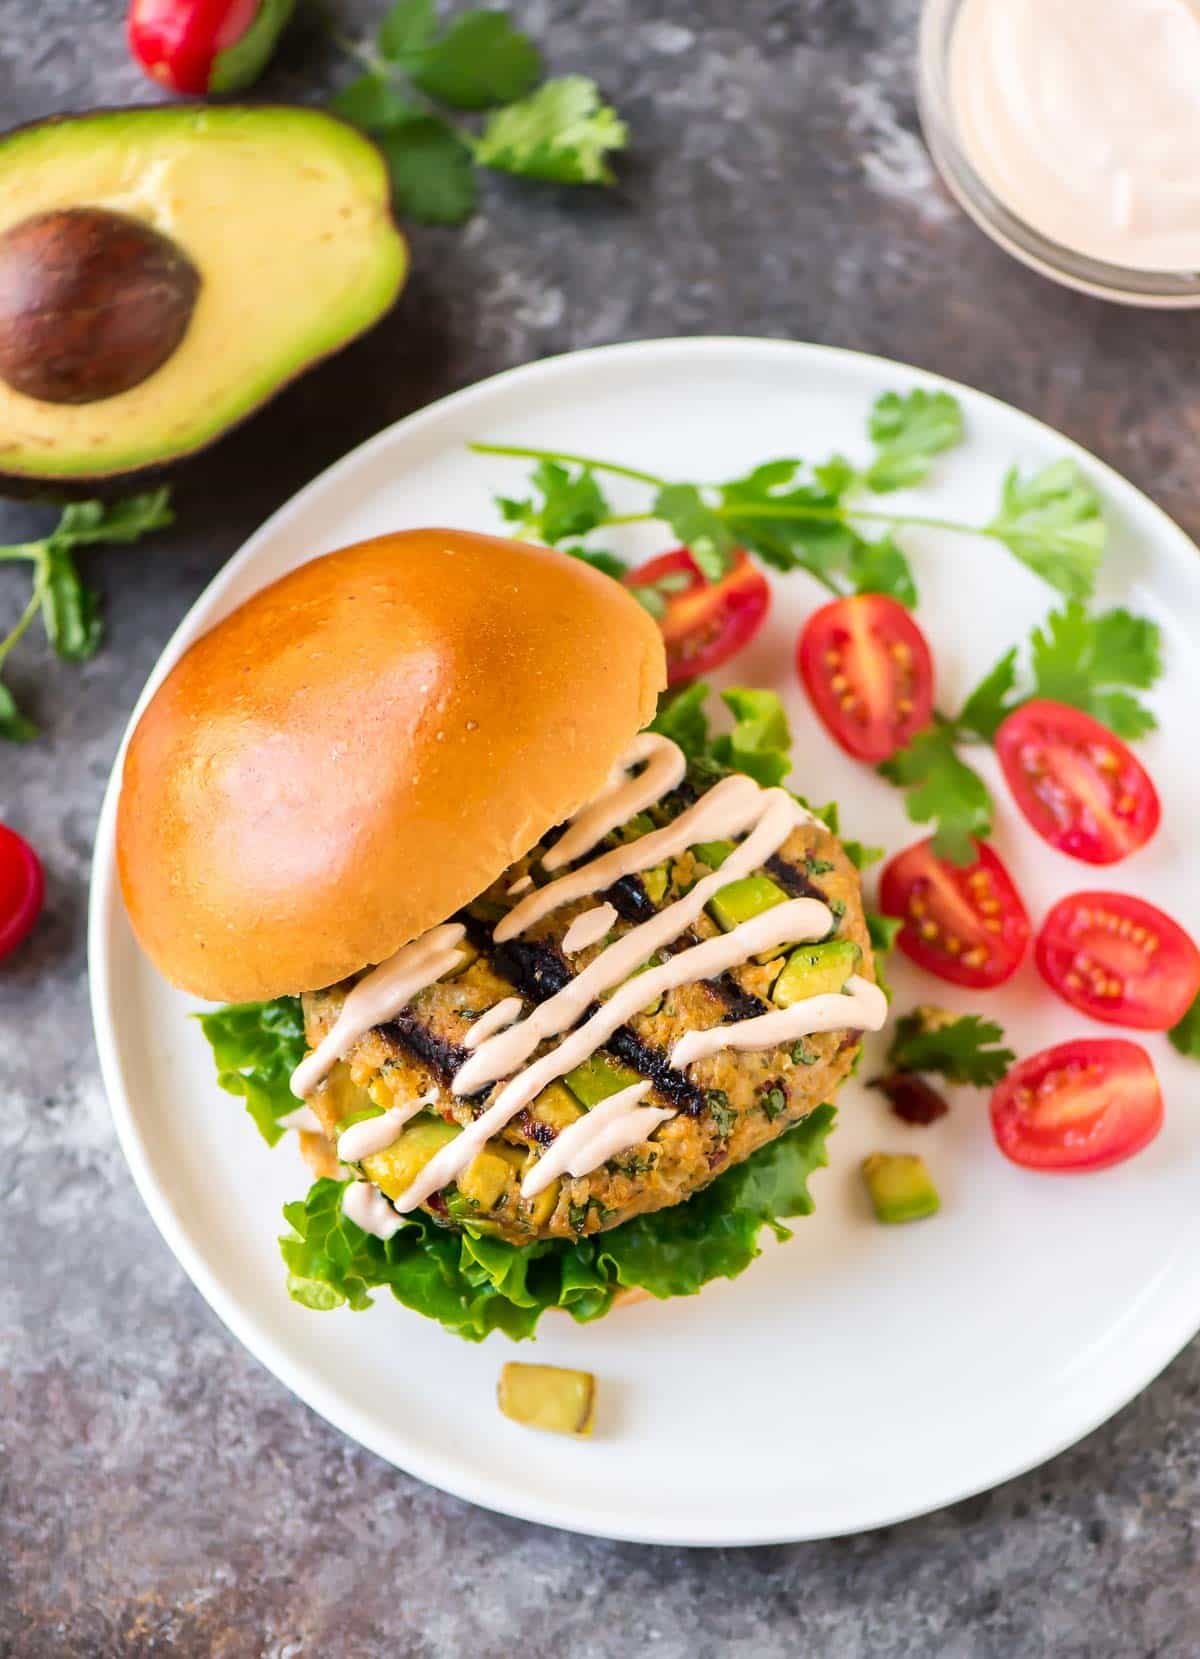 Chicken Avocado Burger with Chipotle Yogurt Sauce. Easy with SO MUCH FLAVOR. Big chunks of avocado mixed with chicken or turkey, cilantro and chipotle peppers. Healthy and delicious! Recipe at wellplated.com | @wellplated